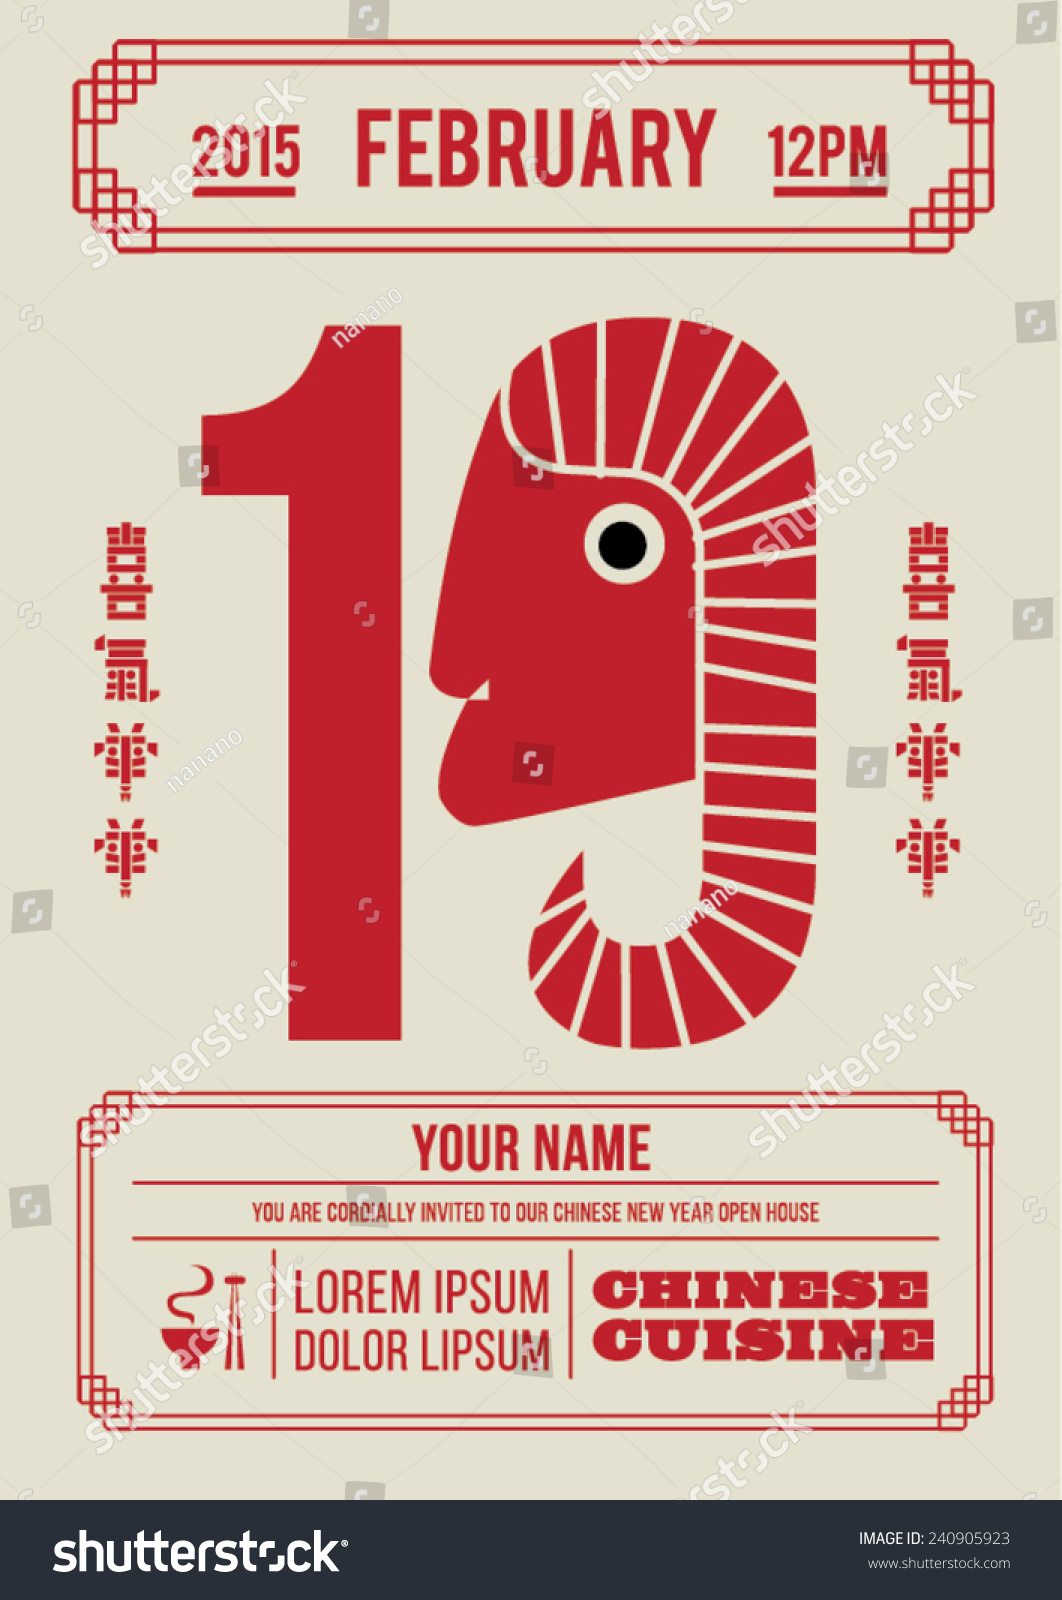 Vintage Chinese Calendar : Vintage chinese new year calendar invitation stock vector